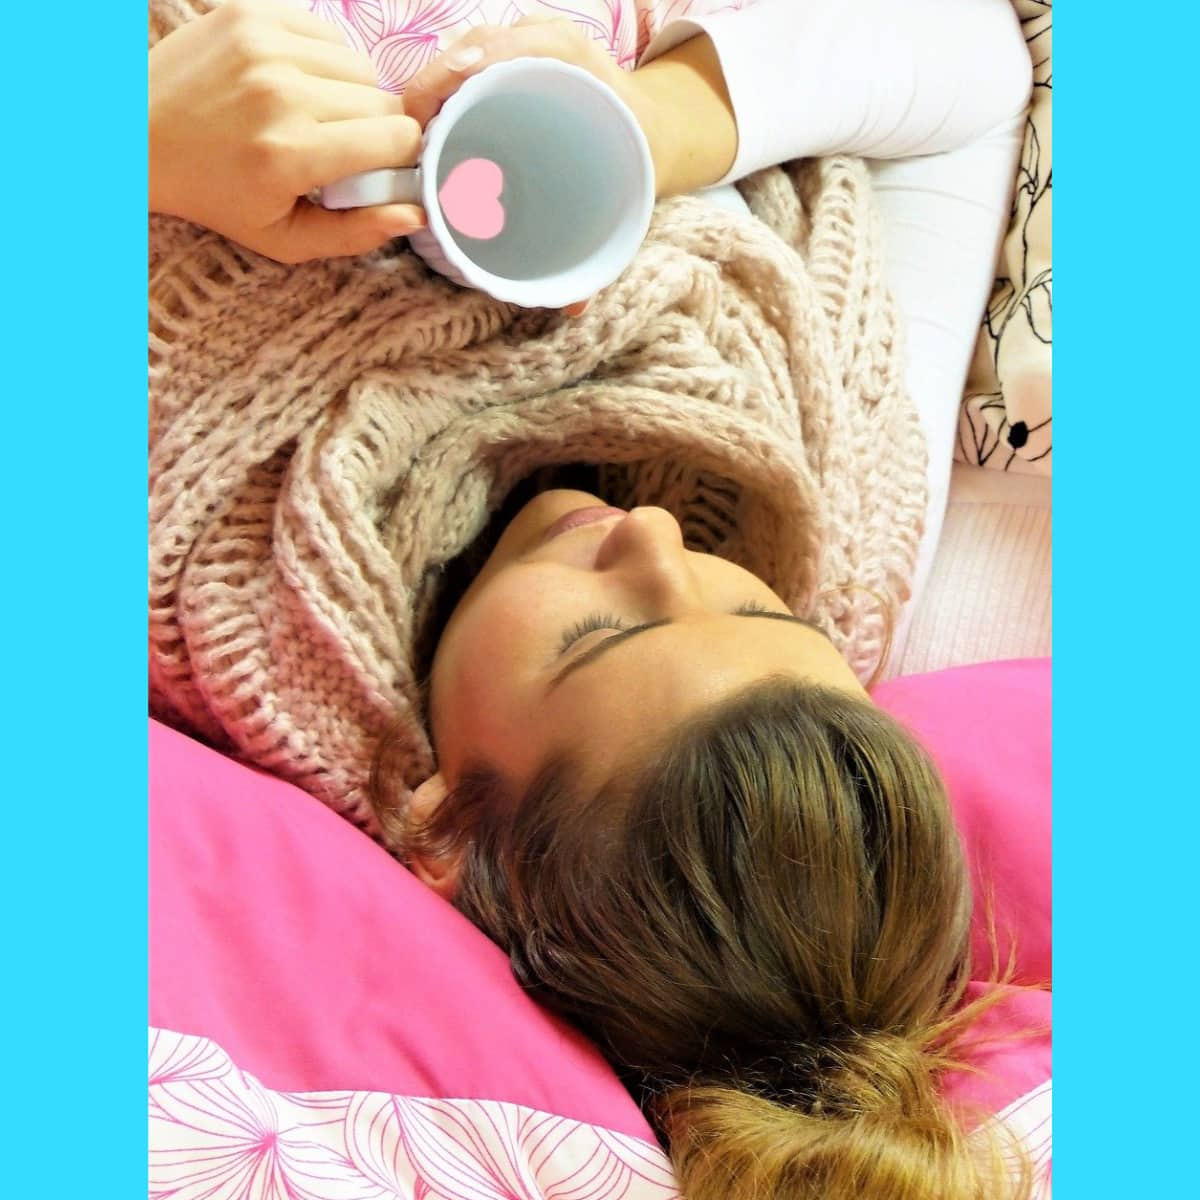 Woman lying down with a mug